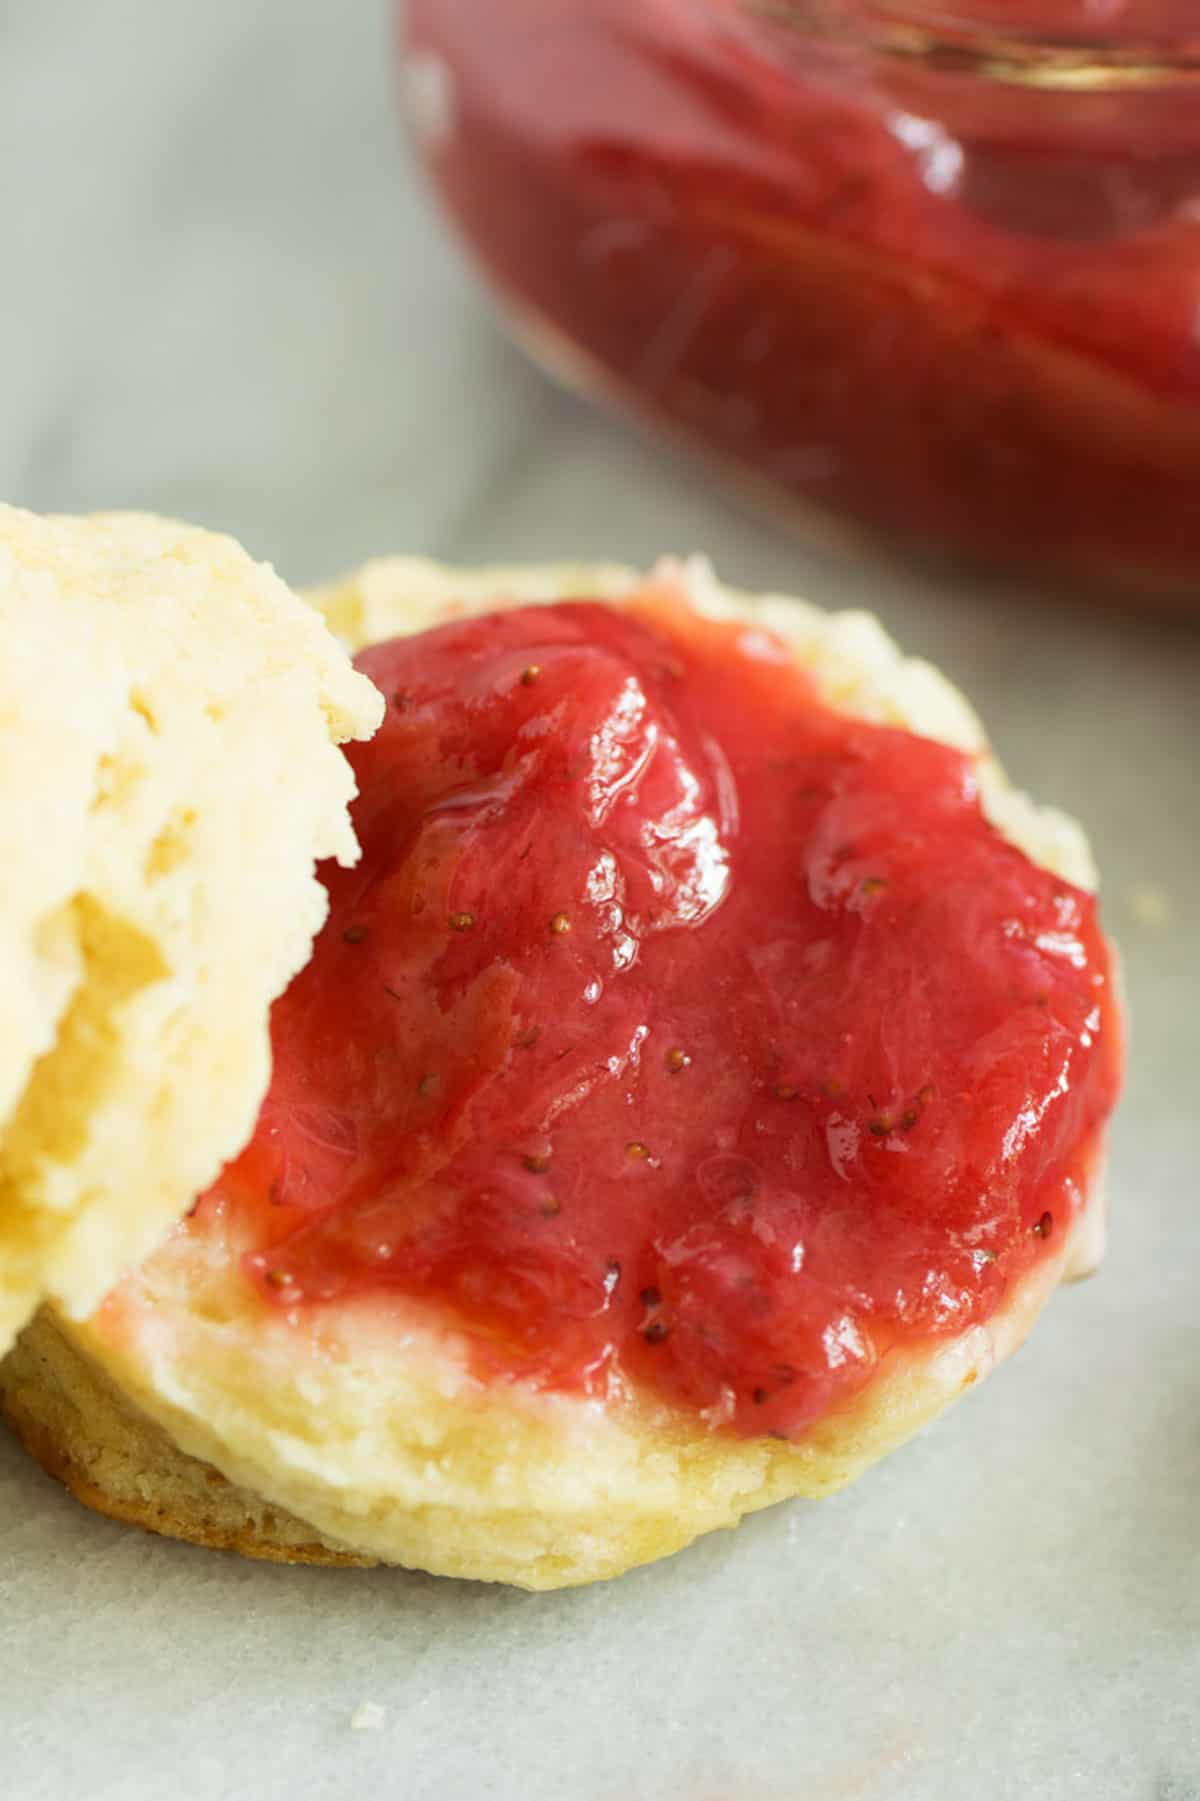 A biscuit with strawberry rhubarb jam